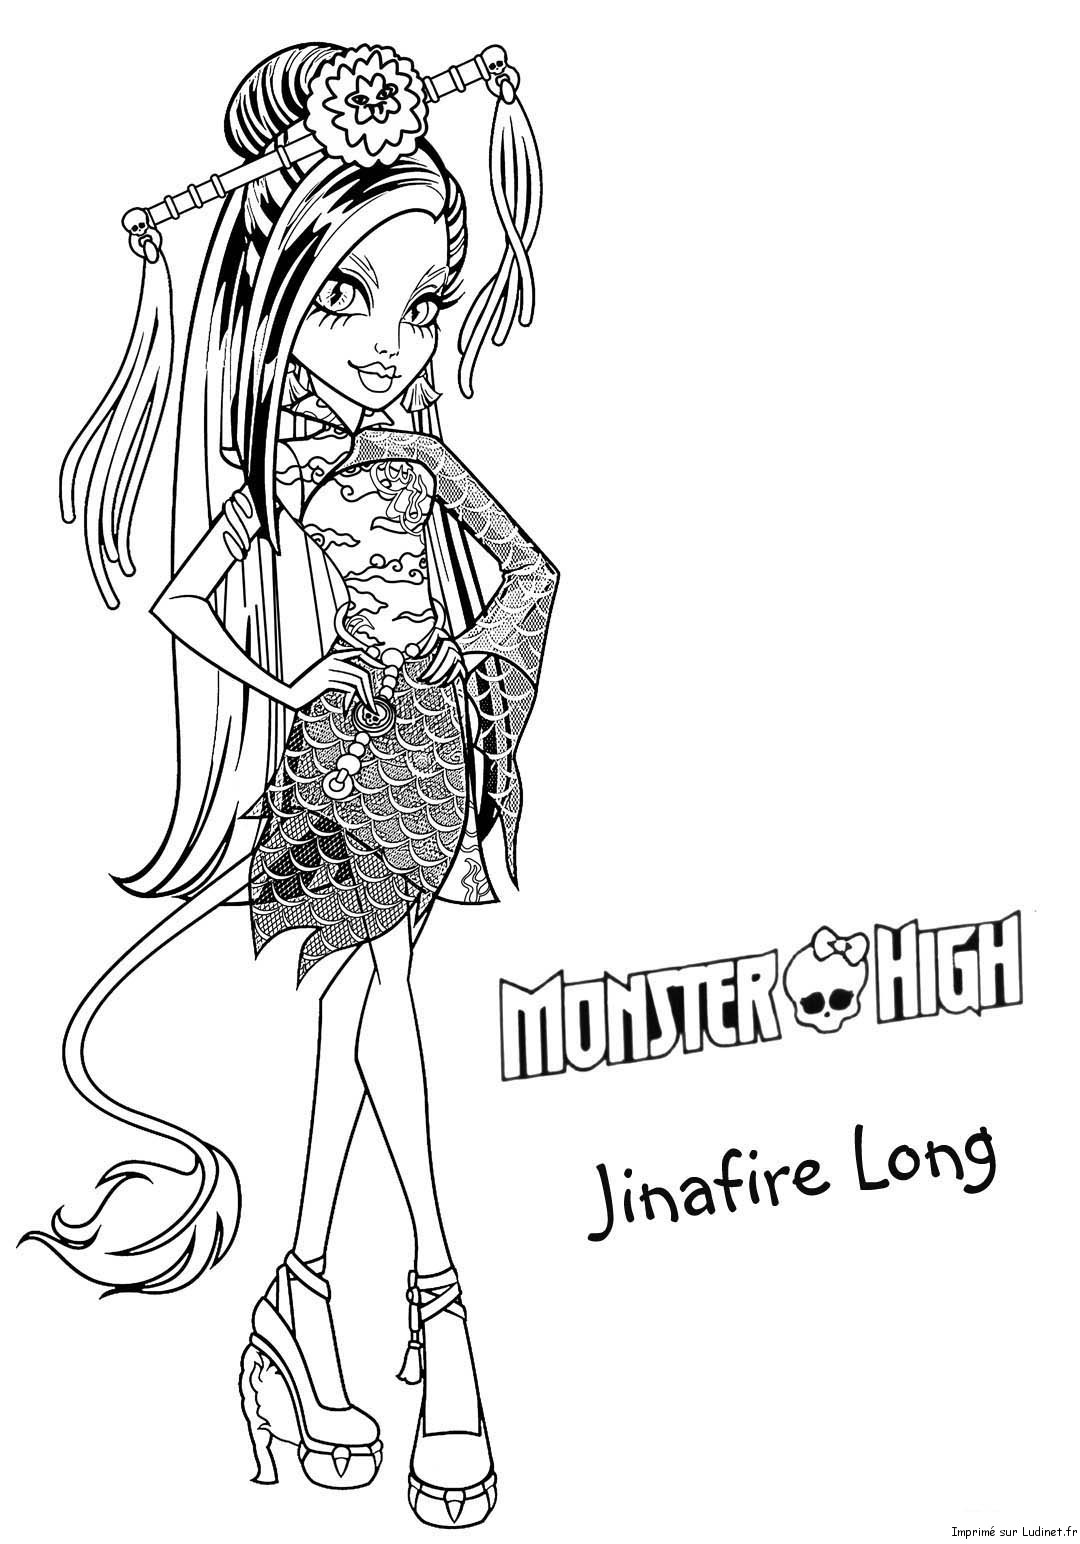 Jinafire long est un coloriage de monster high - Coloriage de monster ...